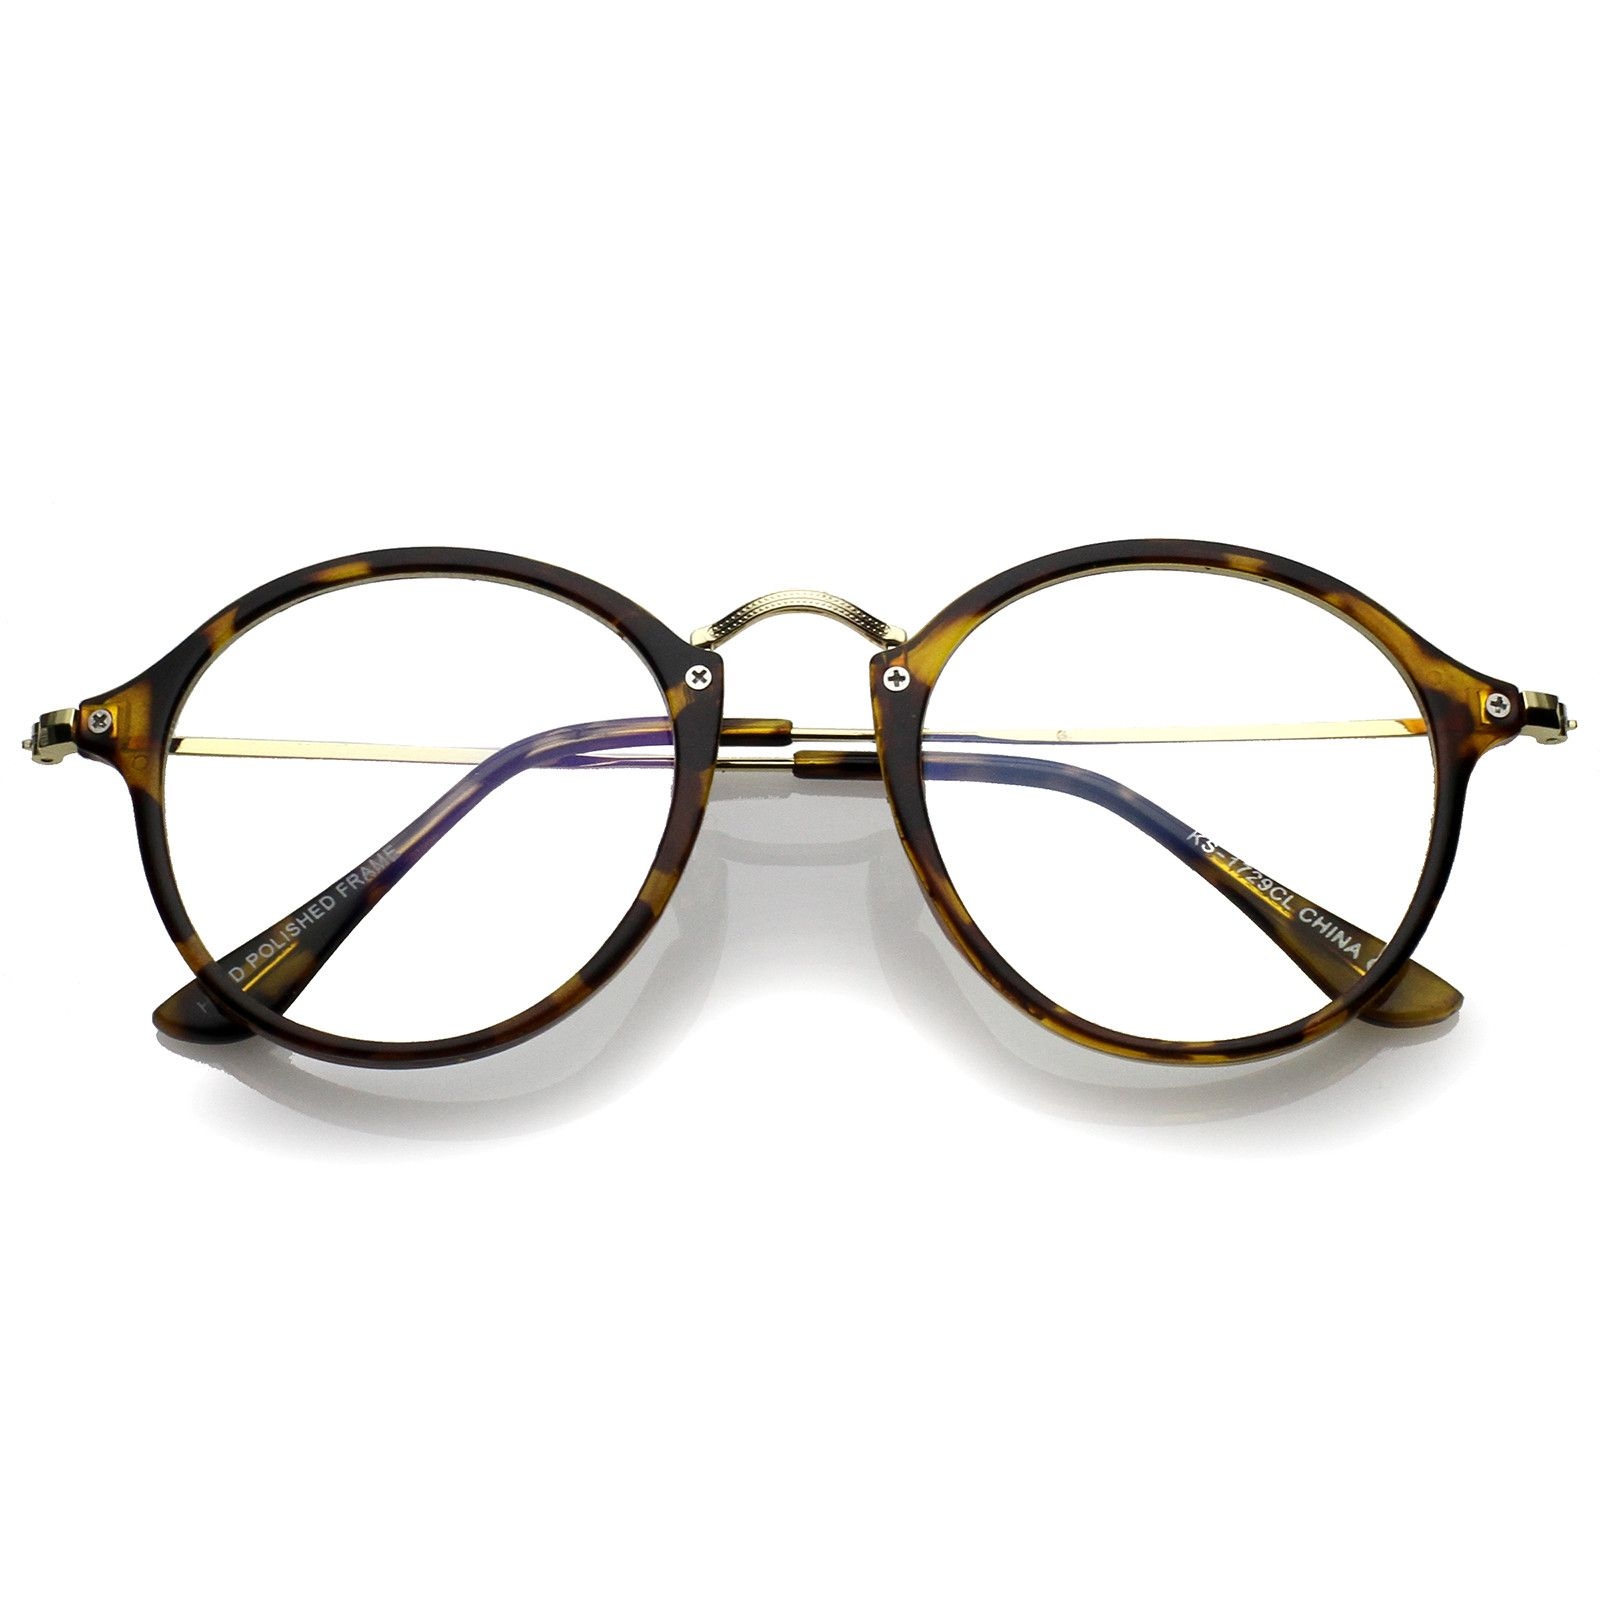 d13a498ff5df1 Classic Slim Metal Temple Clear Lens P3 Round Eyeglasses 48mm  clear  frame   oversized  mirrored  sunglass  purple  bold  sunglasses  cateye  sunglassla